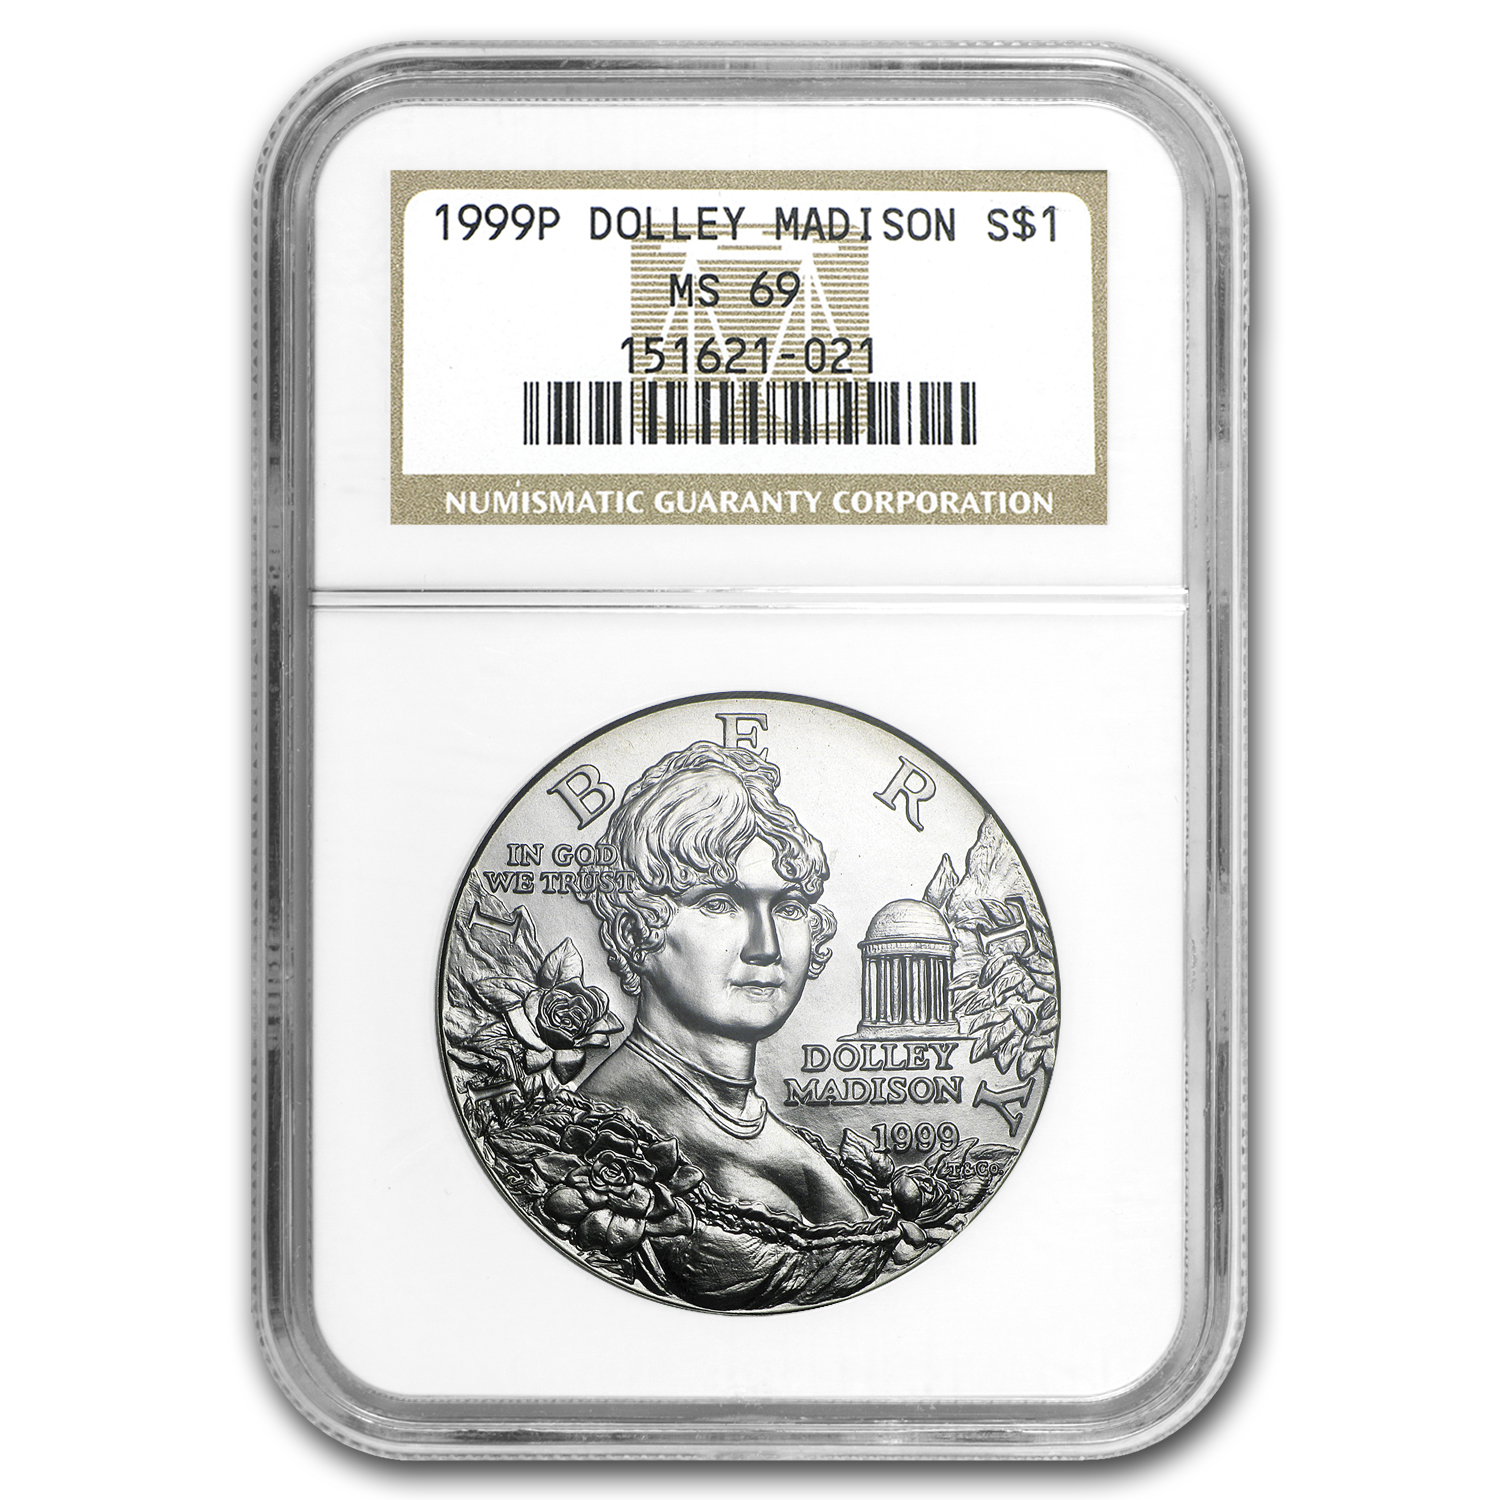 1999-P Dolley Madison $1 Silver Commem MS-69 NGC